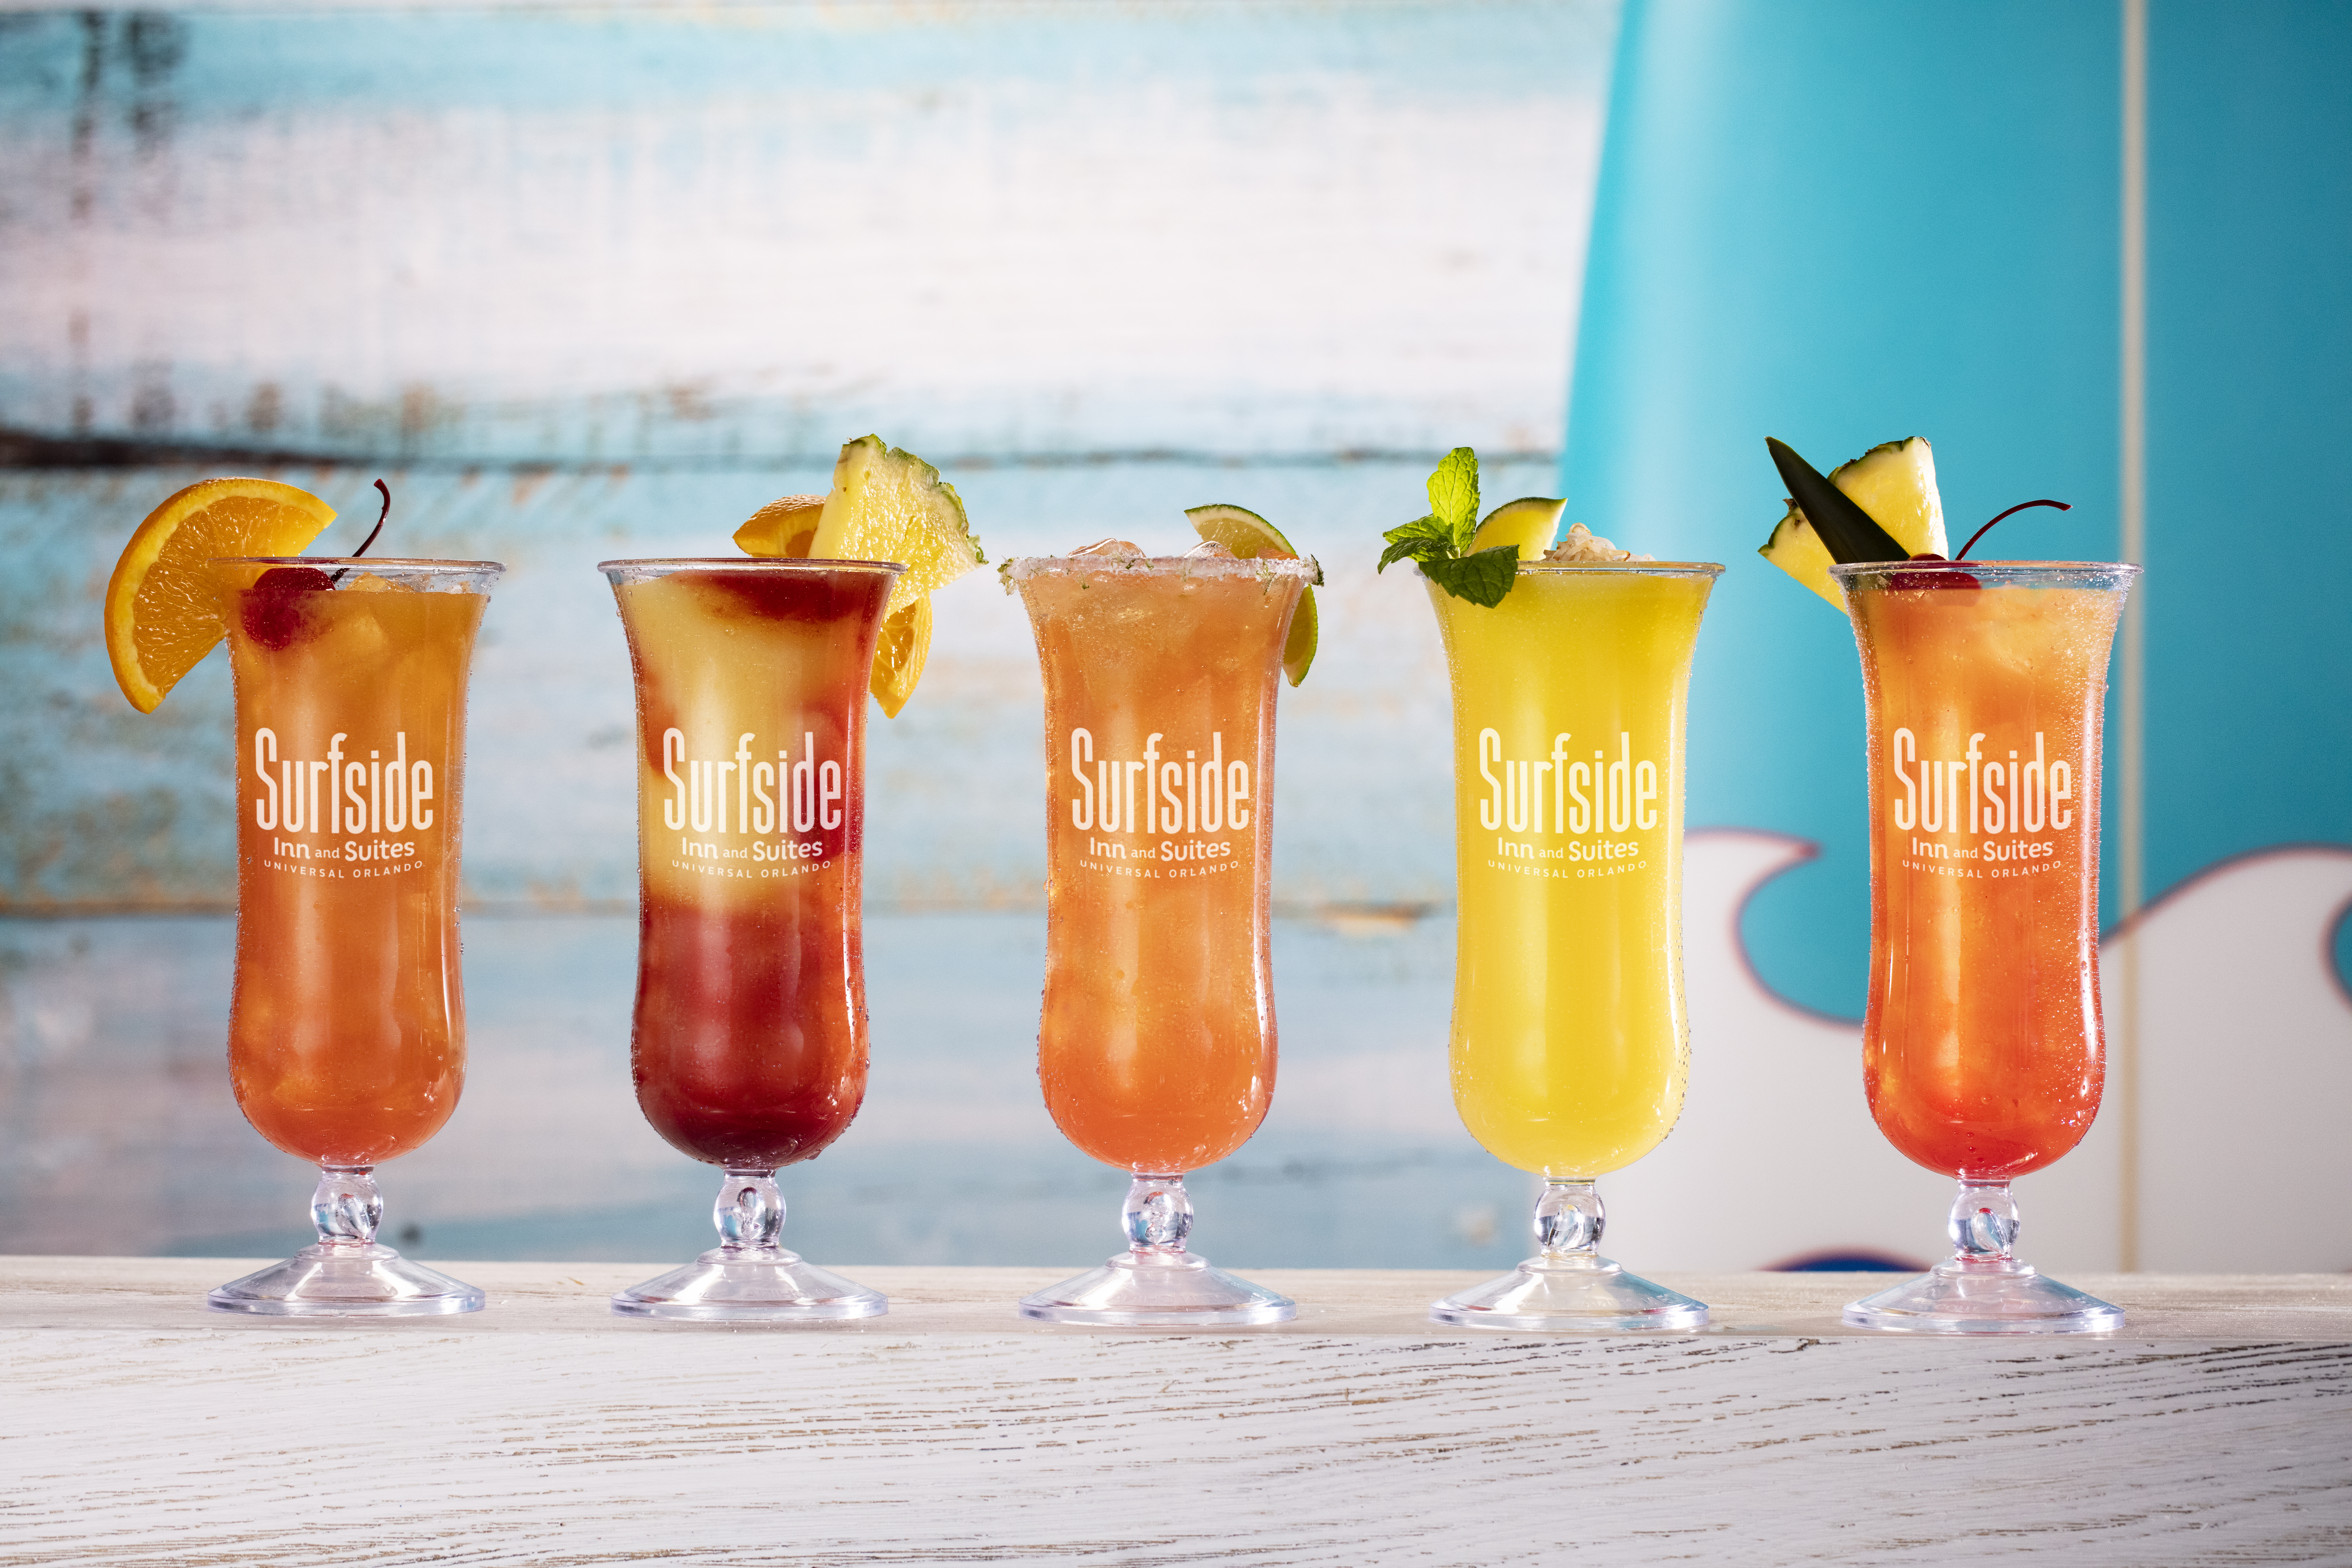 The Surfside Inn & Suites pool bar offers a number of tropical cocktails.